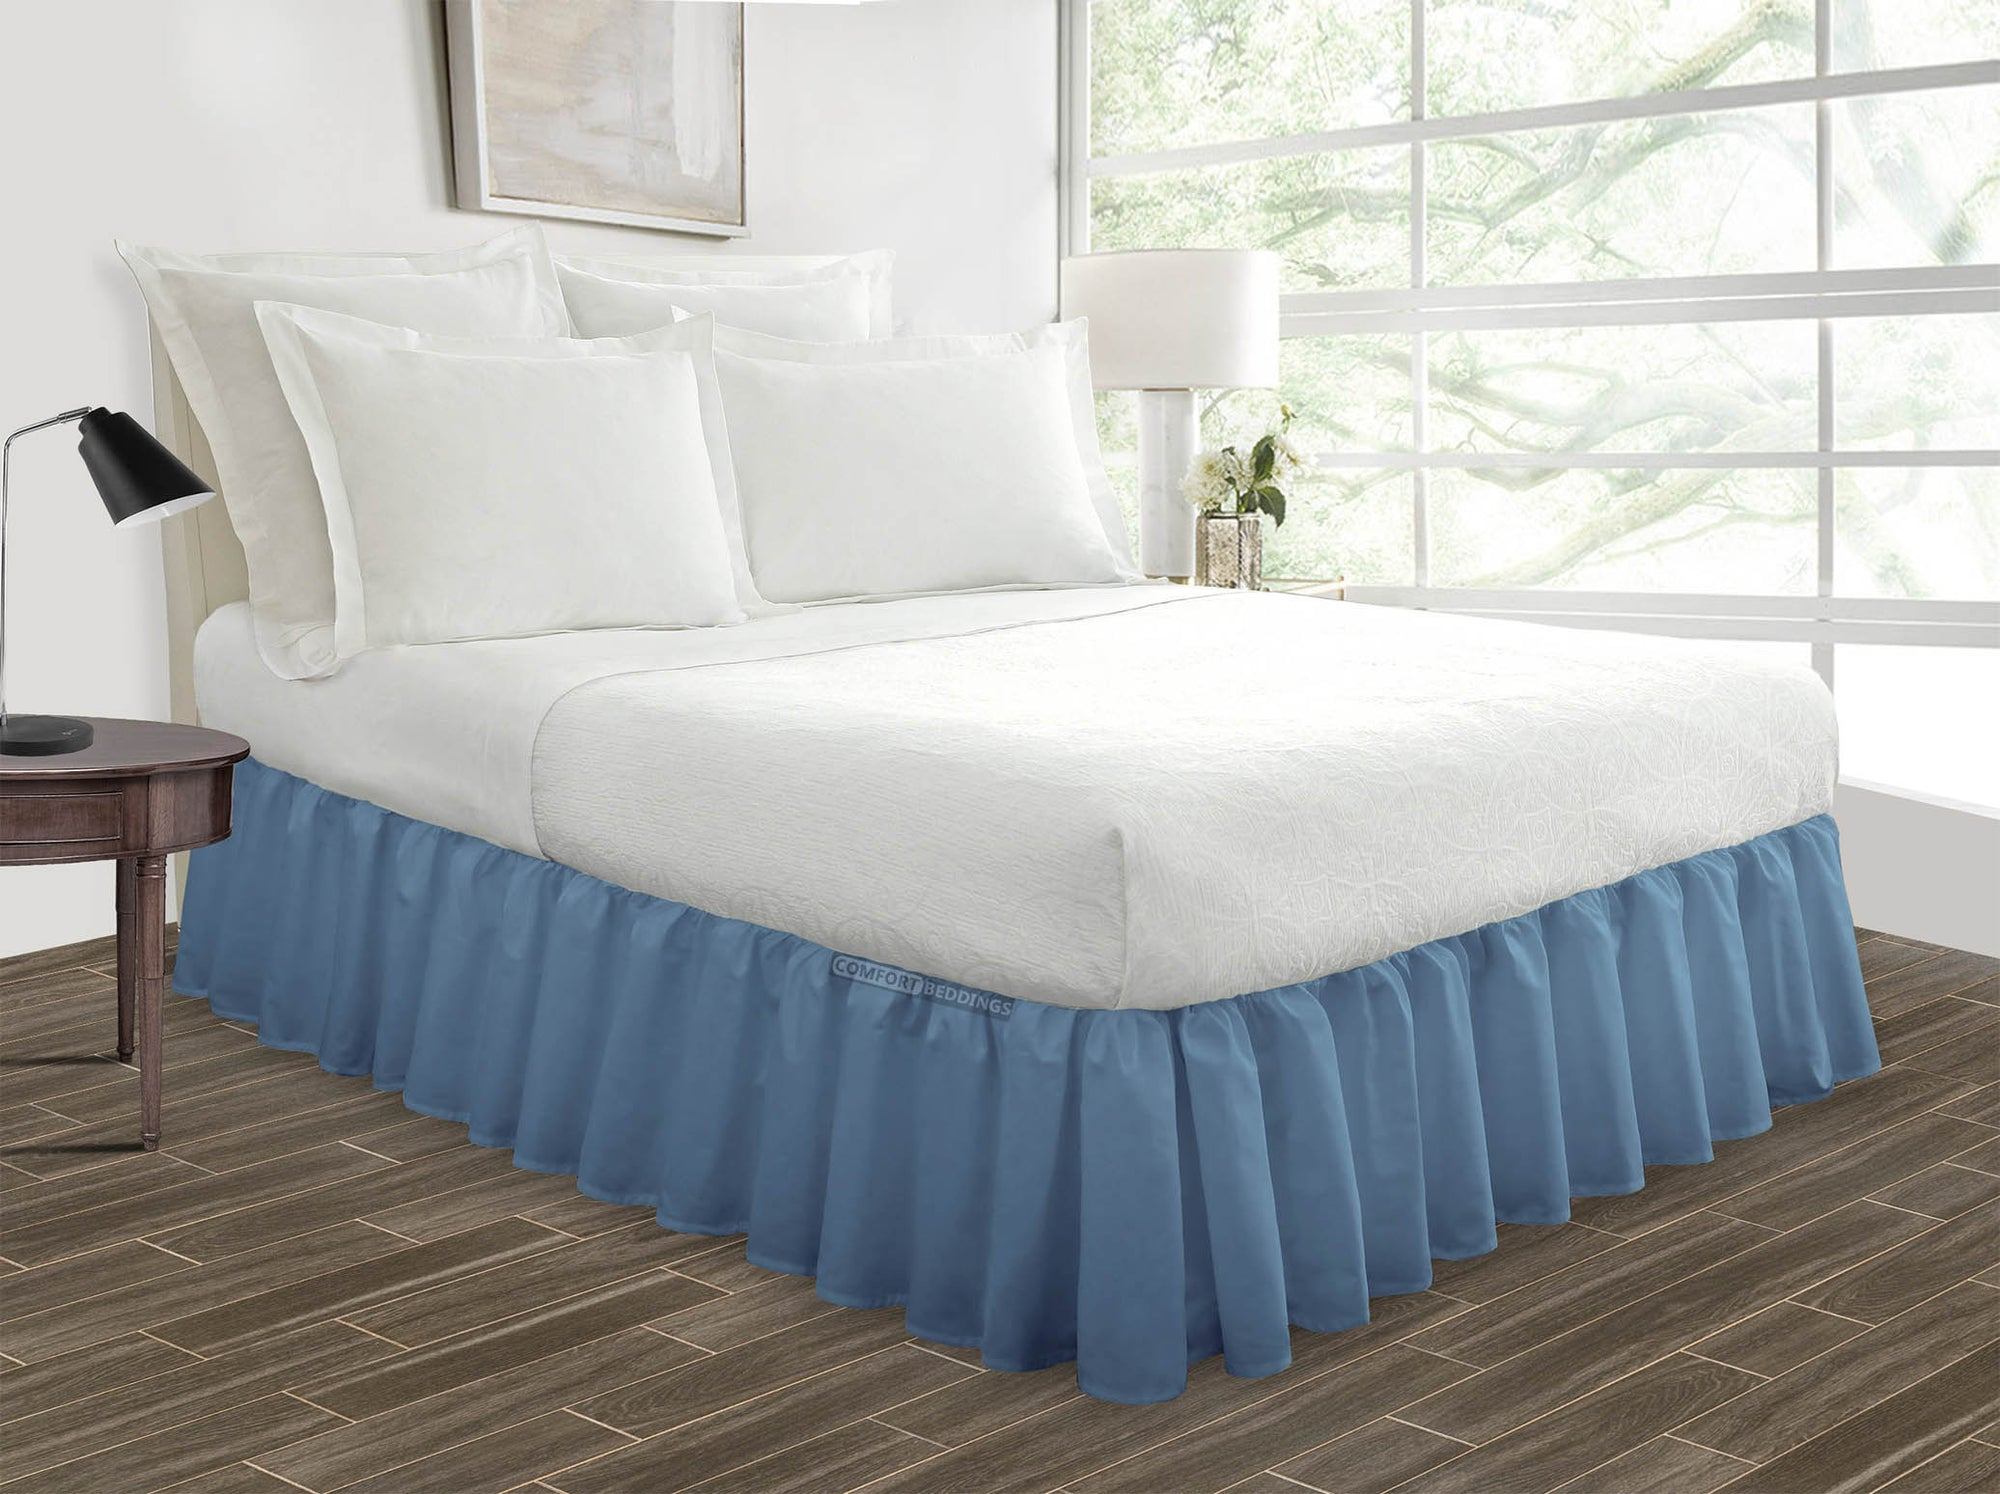 Luxury Mediterranean Blue Ruffled Bed Skirt